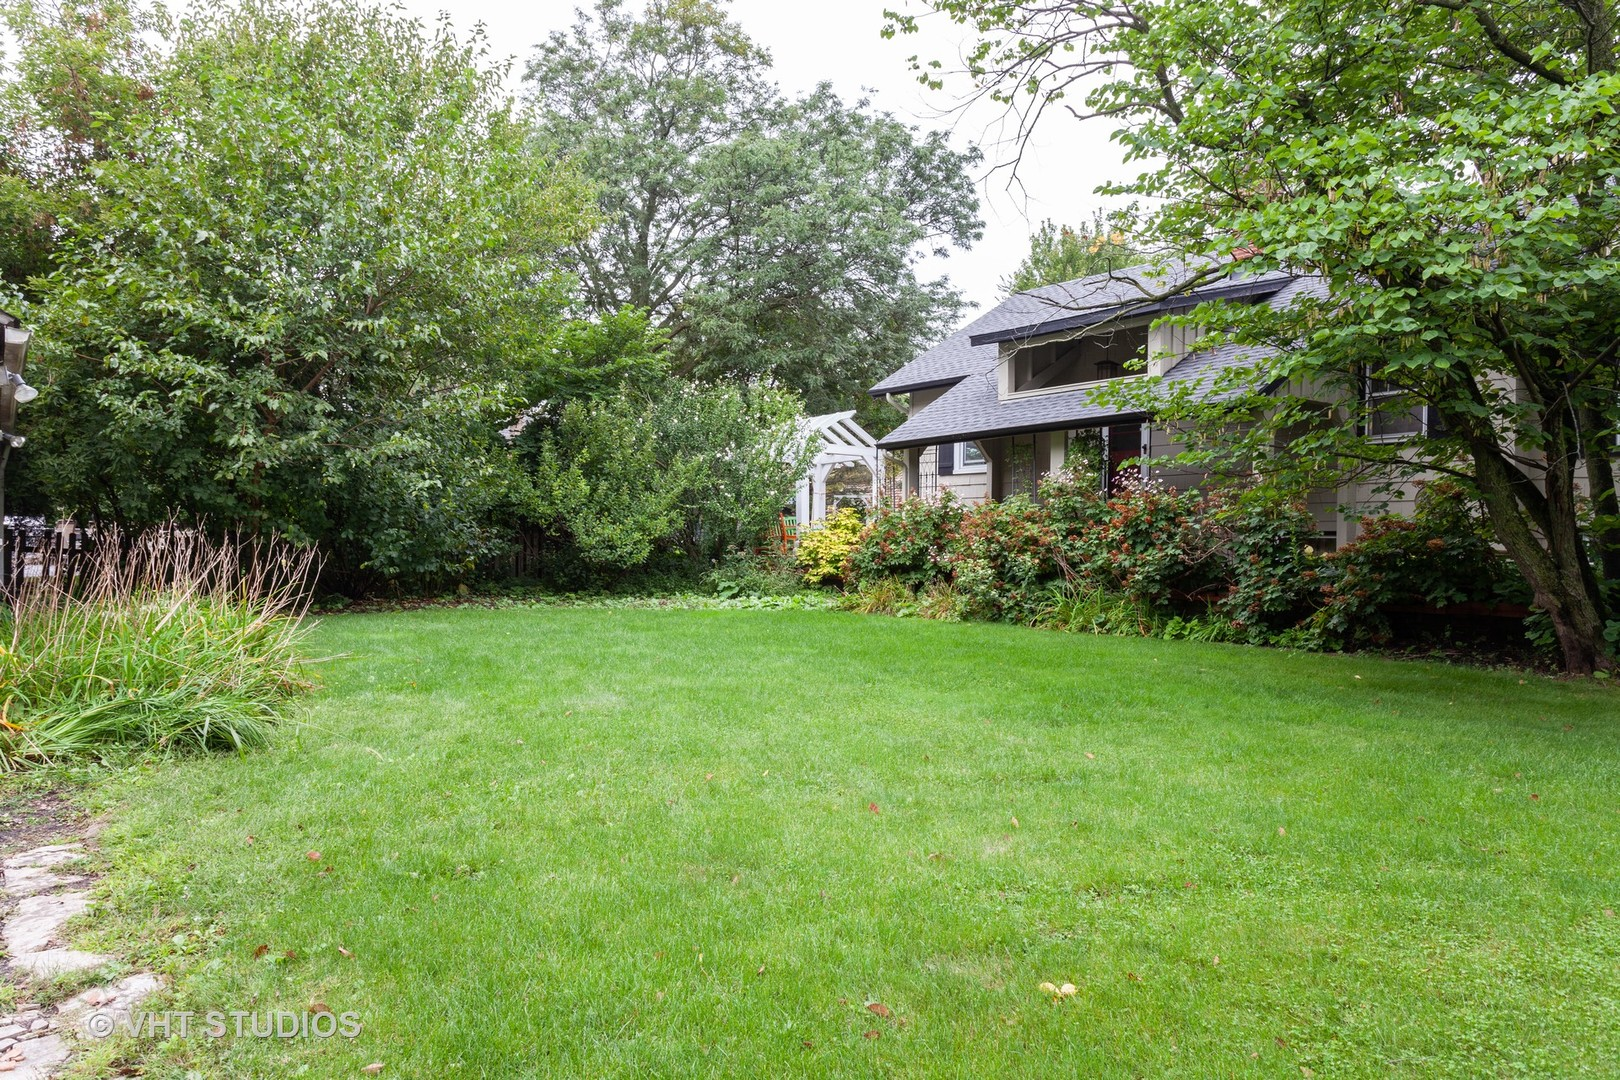 203 West North, Hinsdale, Illinois, 60521